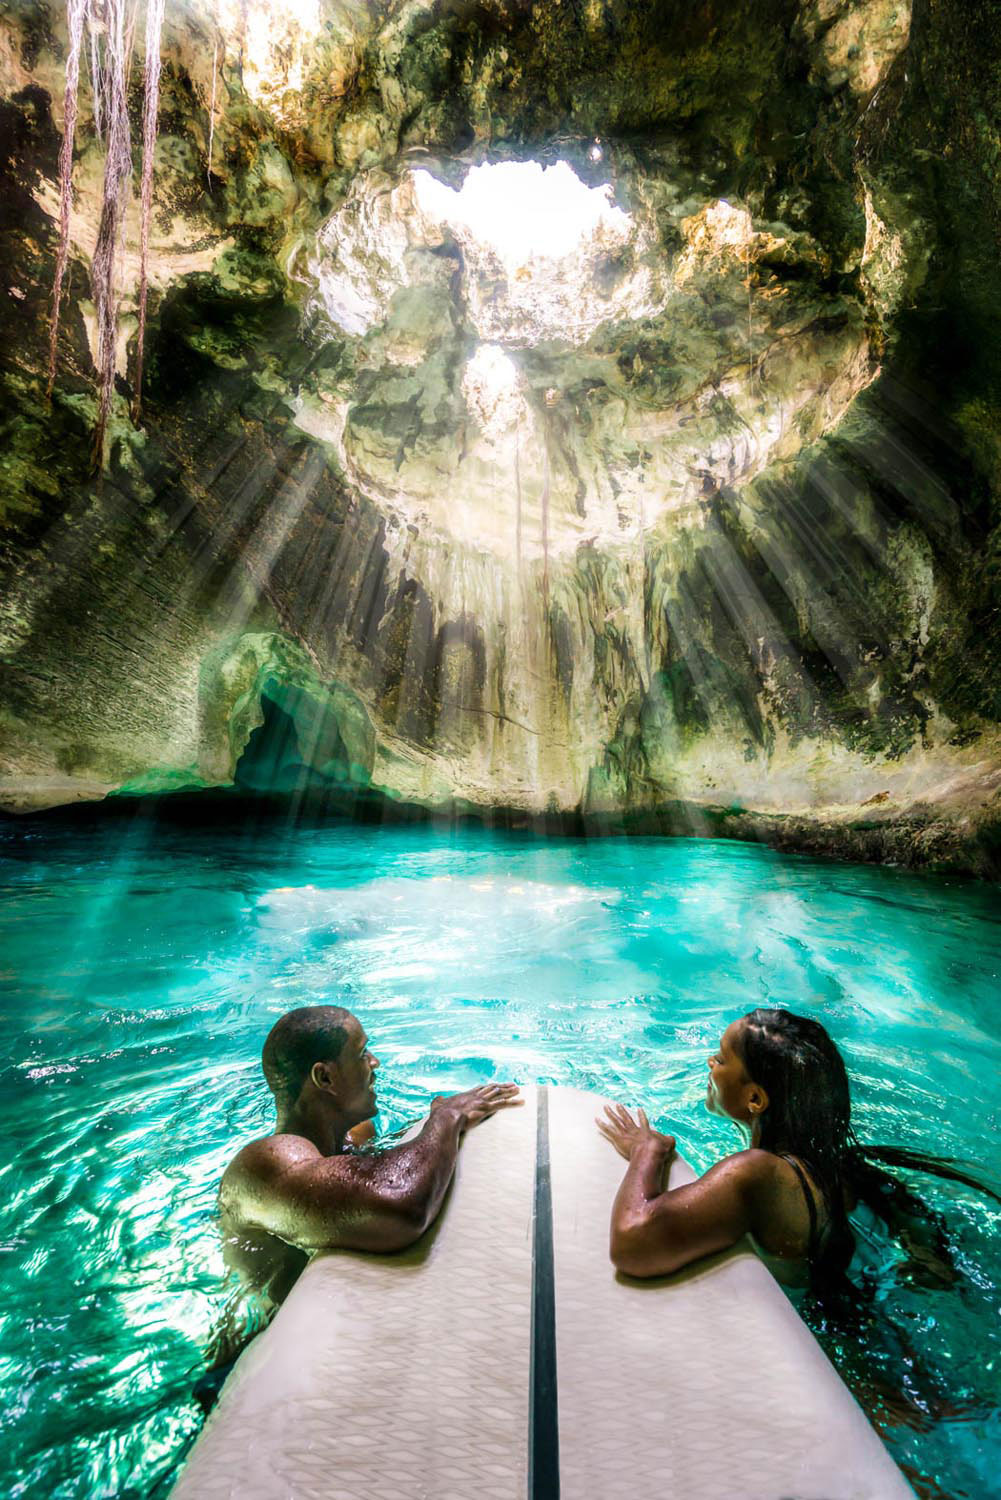 Exploring Thunderball Grotto in Exuma. Photo courtesy Bahamas Ministry of Tourism and Aviation